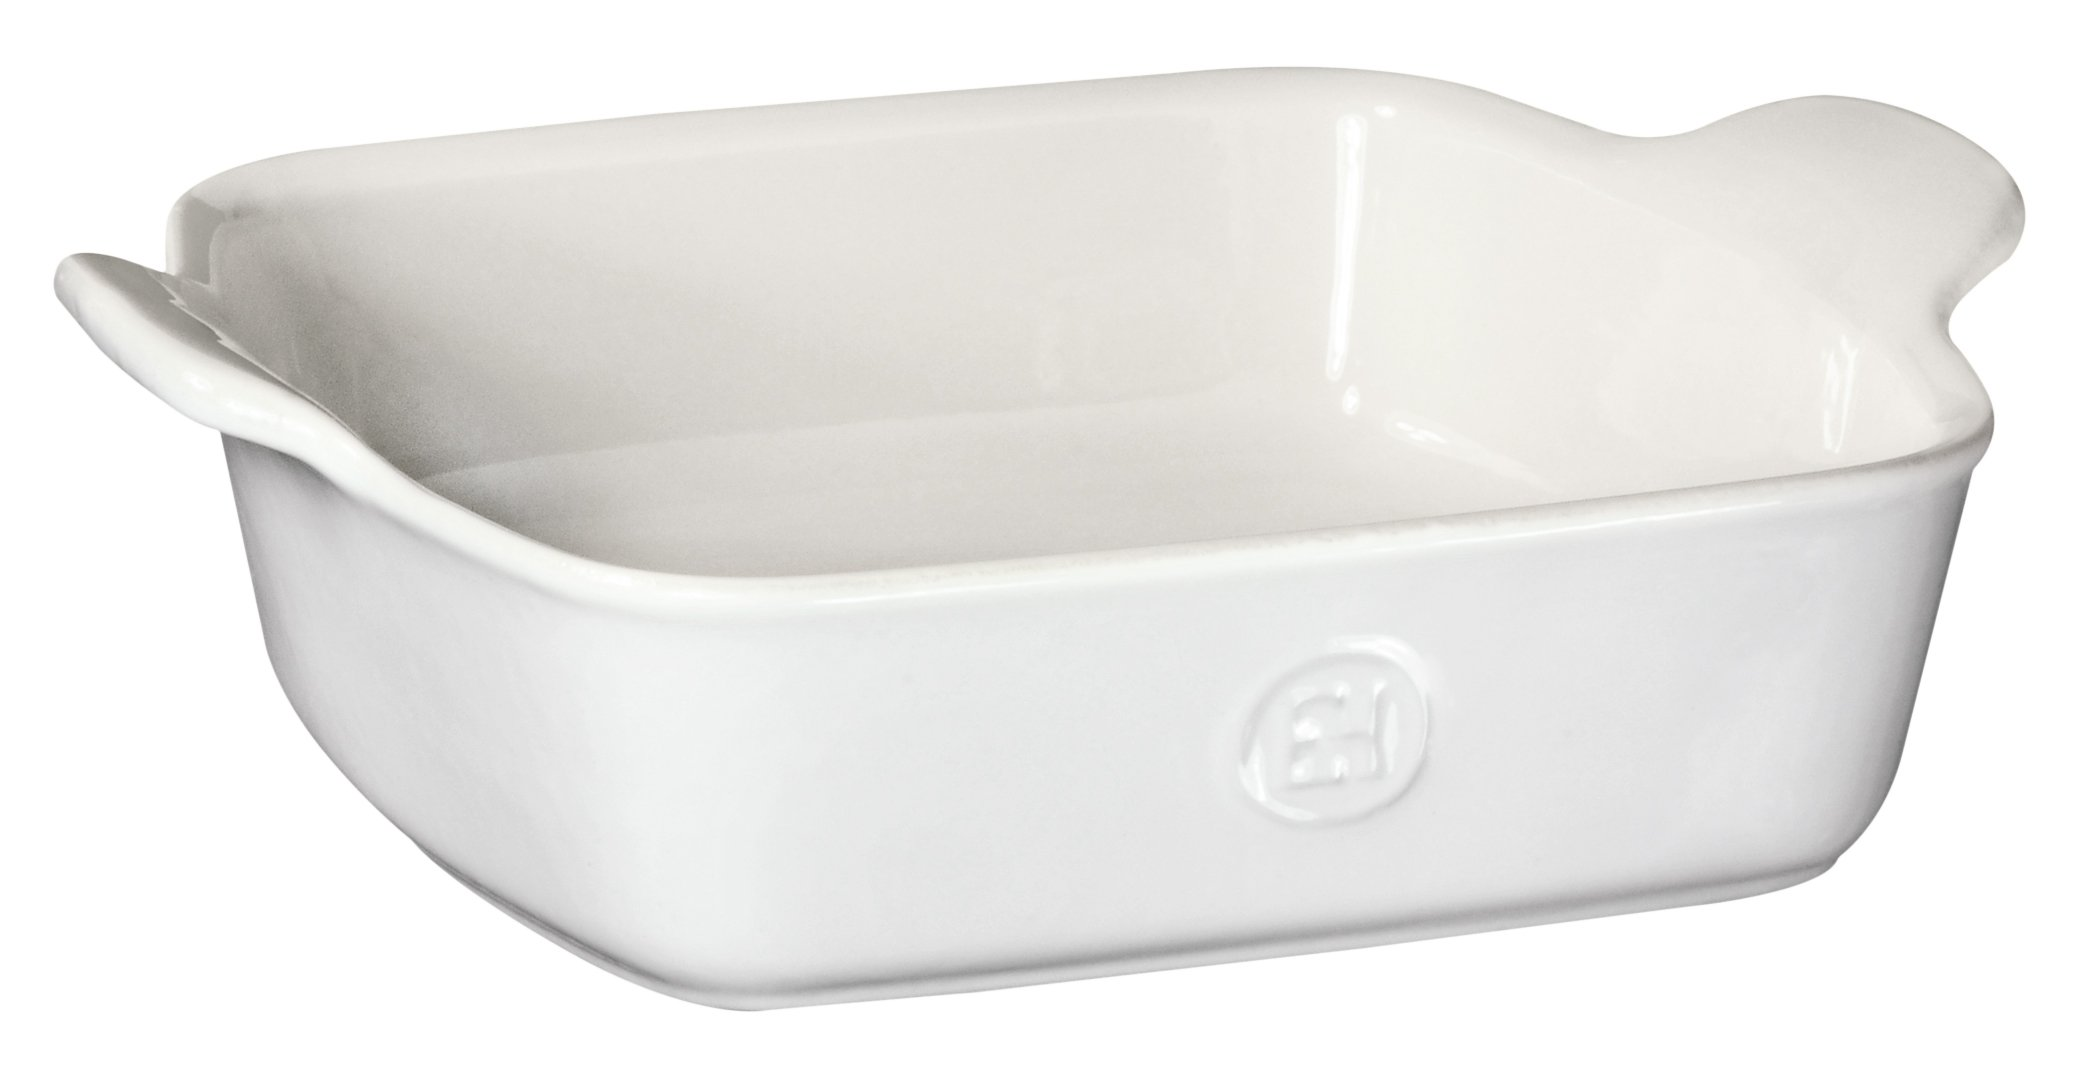 Emile Henry Made In France HR Modern Classics Square Baking Dish 8 x 8''/2 Qt, White